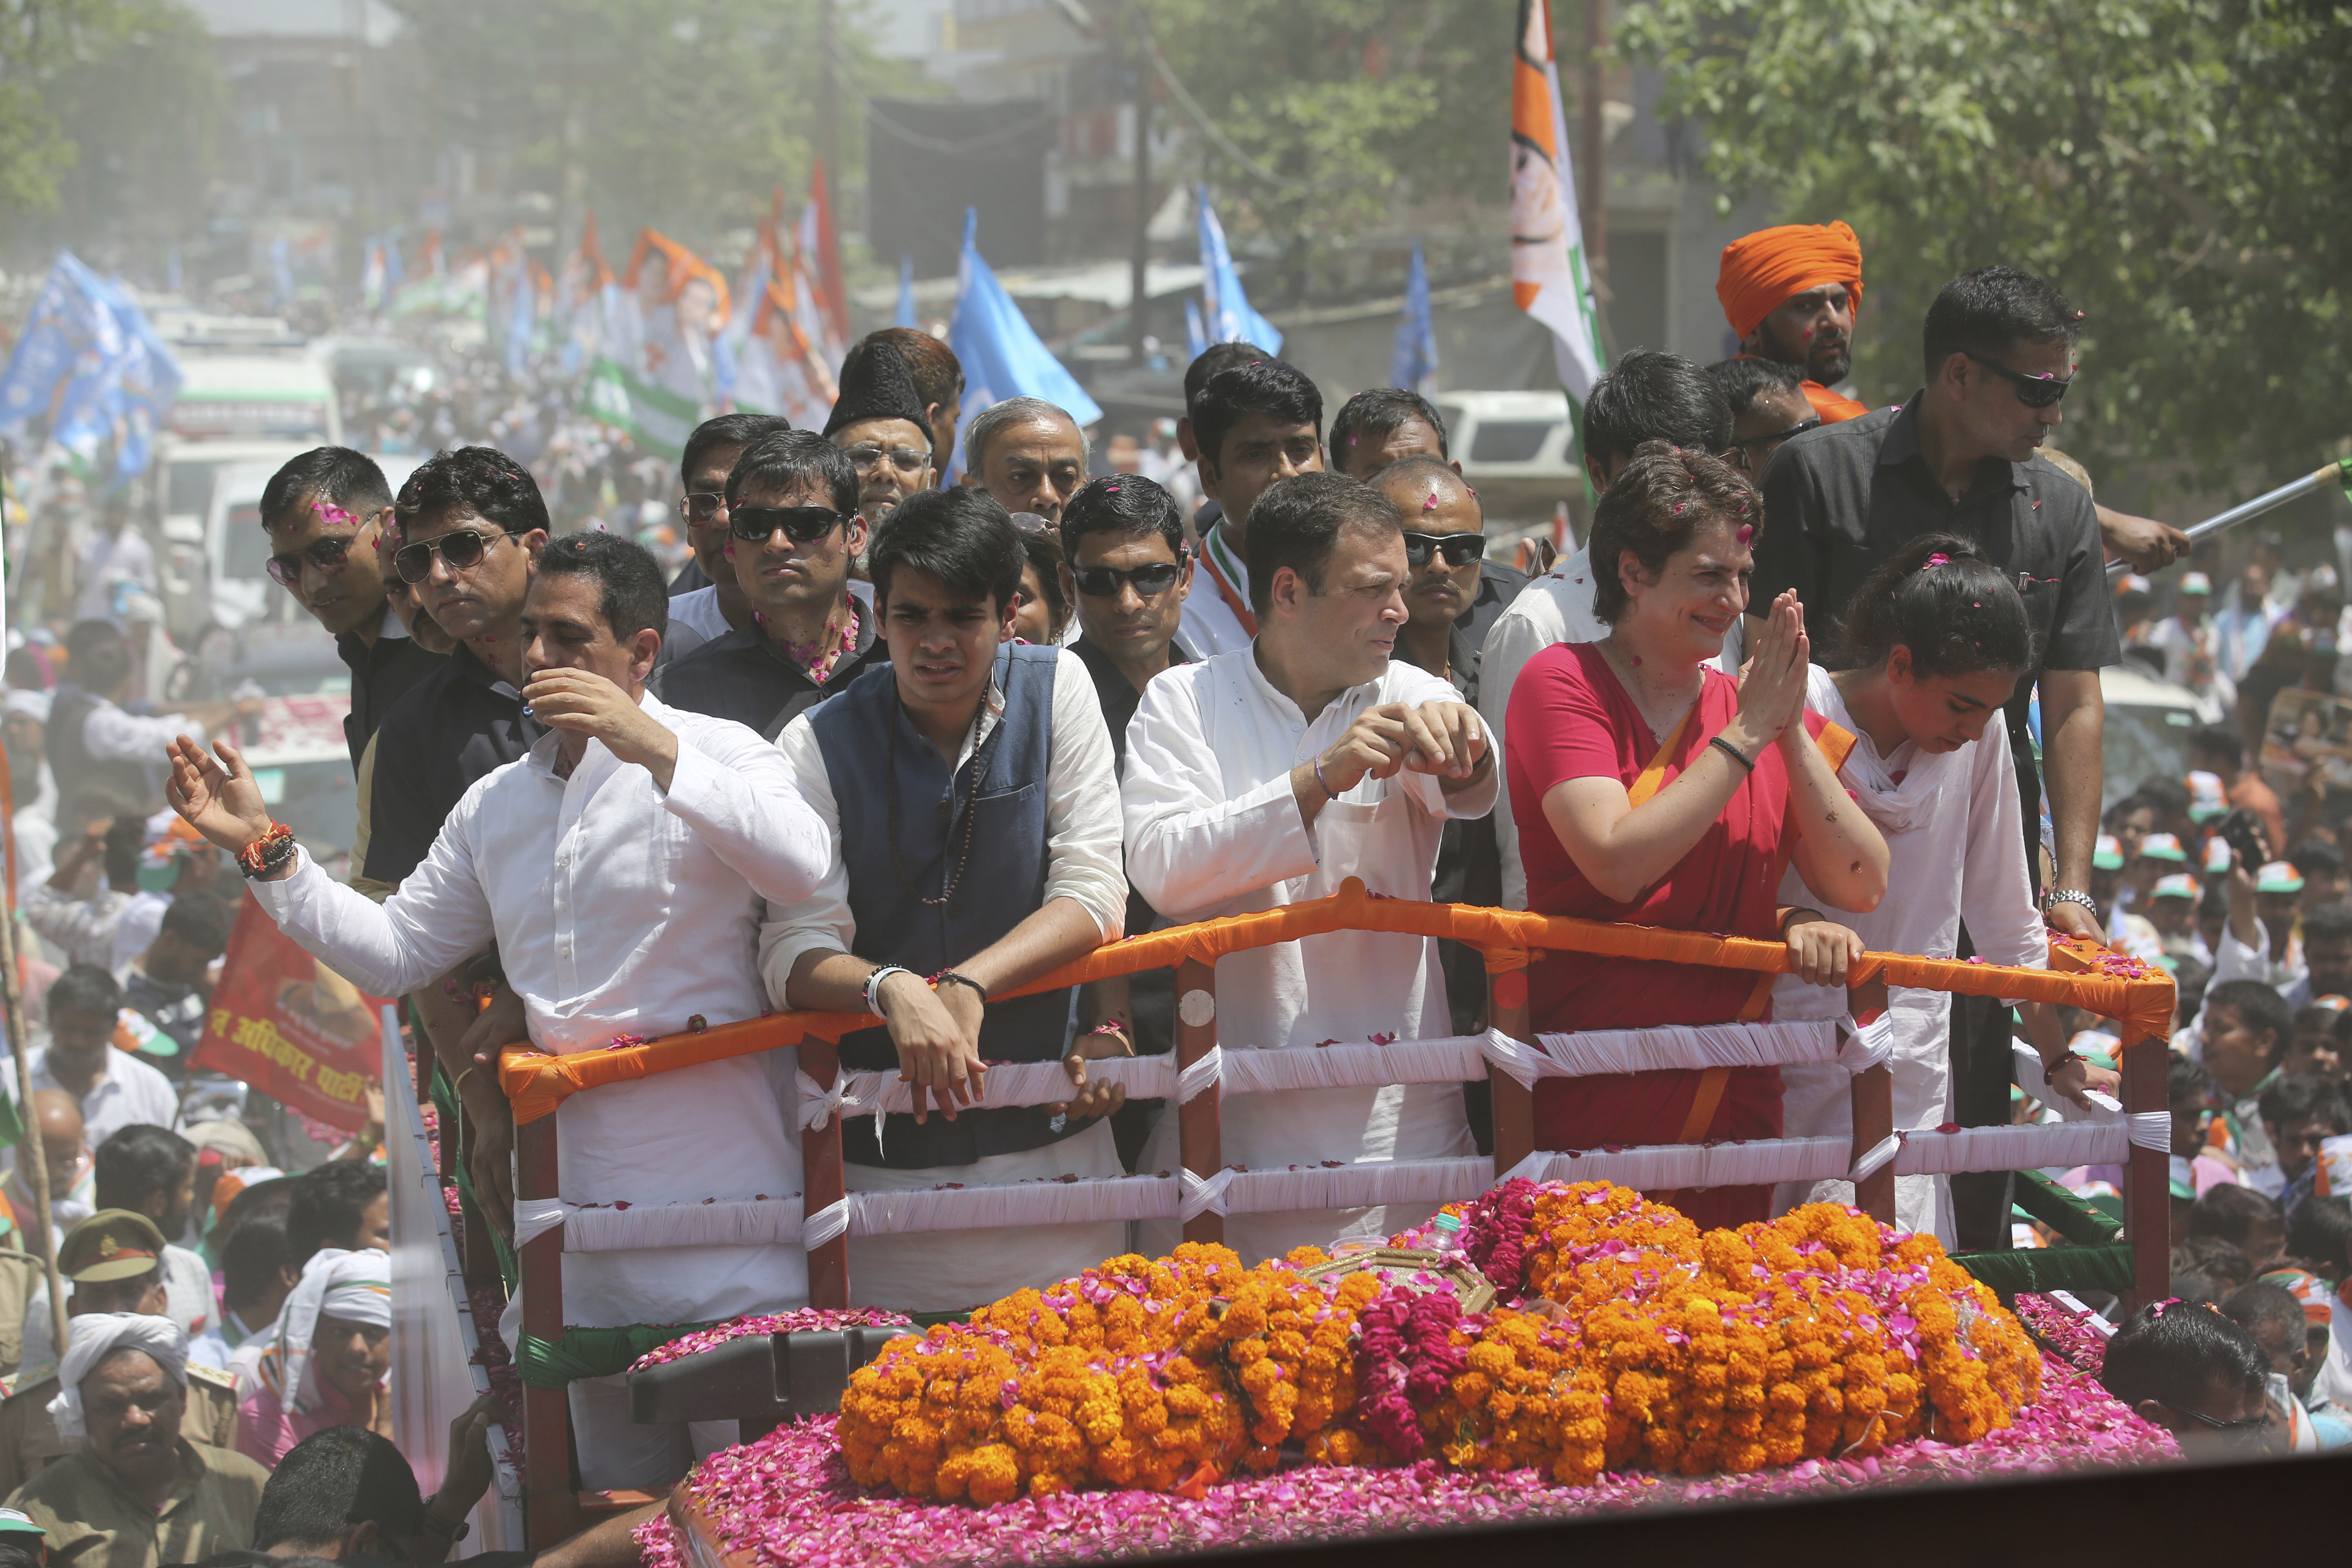 Congress party chief Rahul Gandhi, center in white, accompanied by his sister Priyanka Vadra in red arrives to file his nomination papers for the upcoming general elections in Amethi, Uttar Pradesh - AP